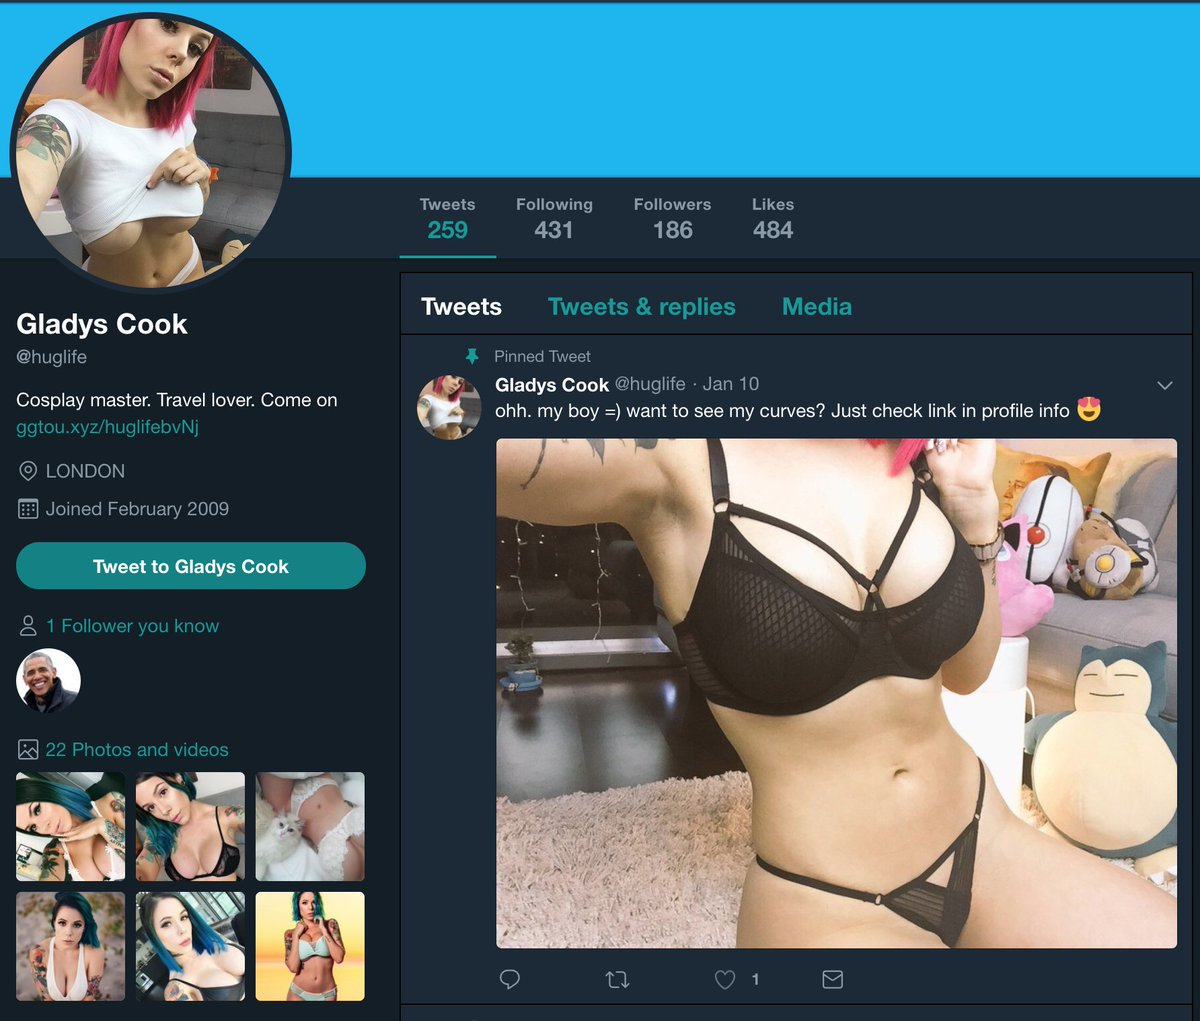 Barack Obama Porn barack obama is following a porn #twitter bot! : the_donald